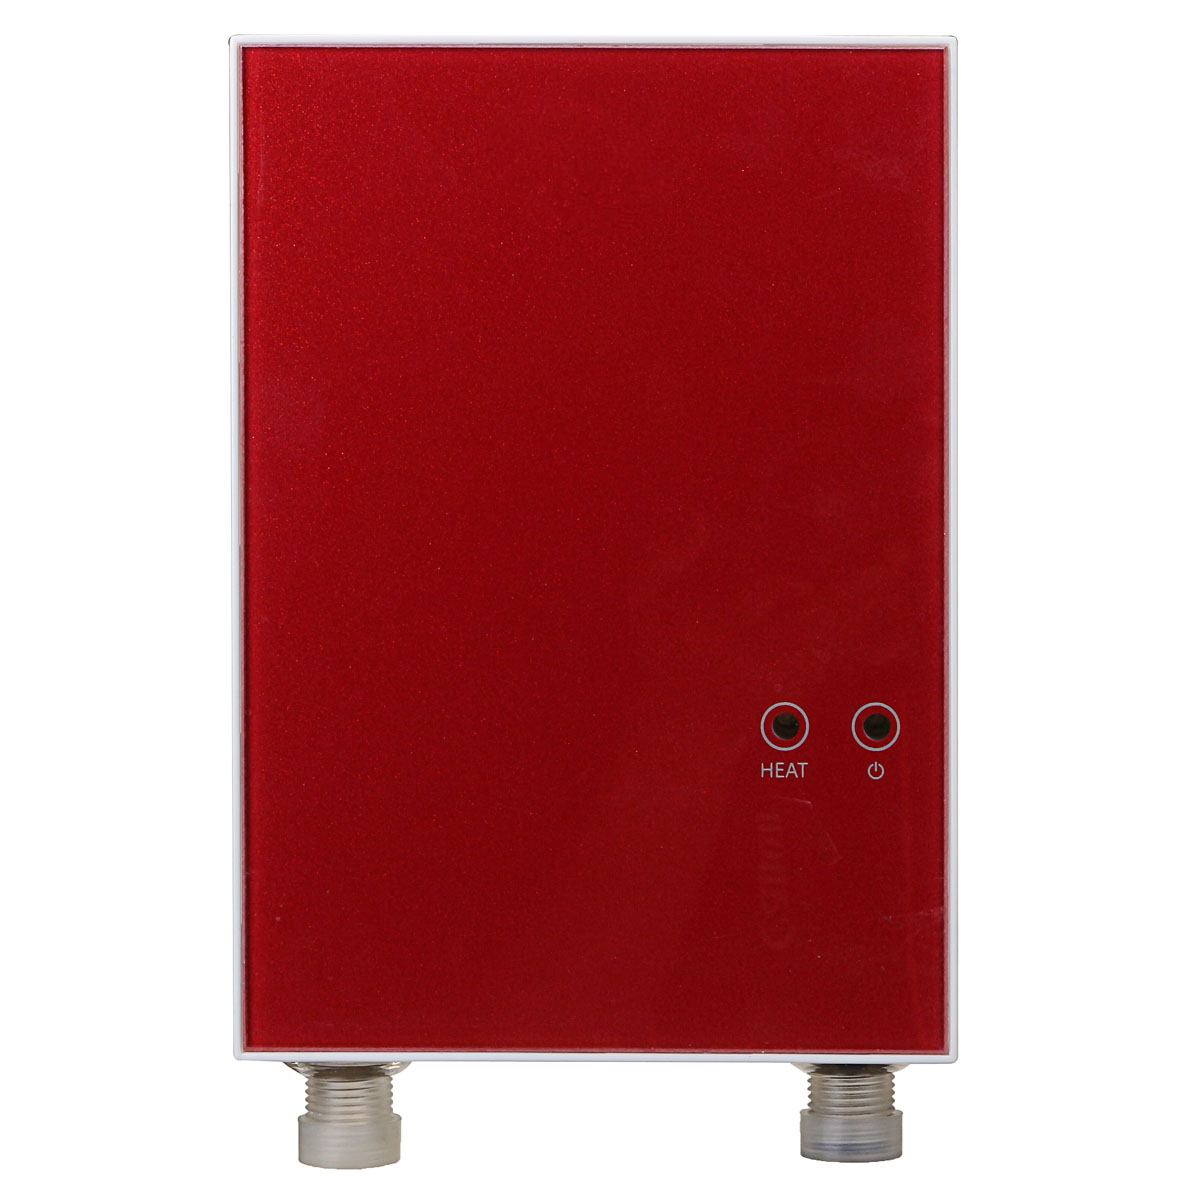 3500W 220V Tankless Instant Hot Water Heater Kitchen Electric Hot Water System